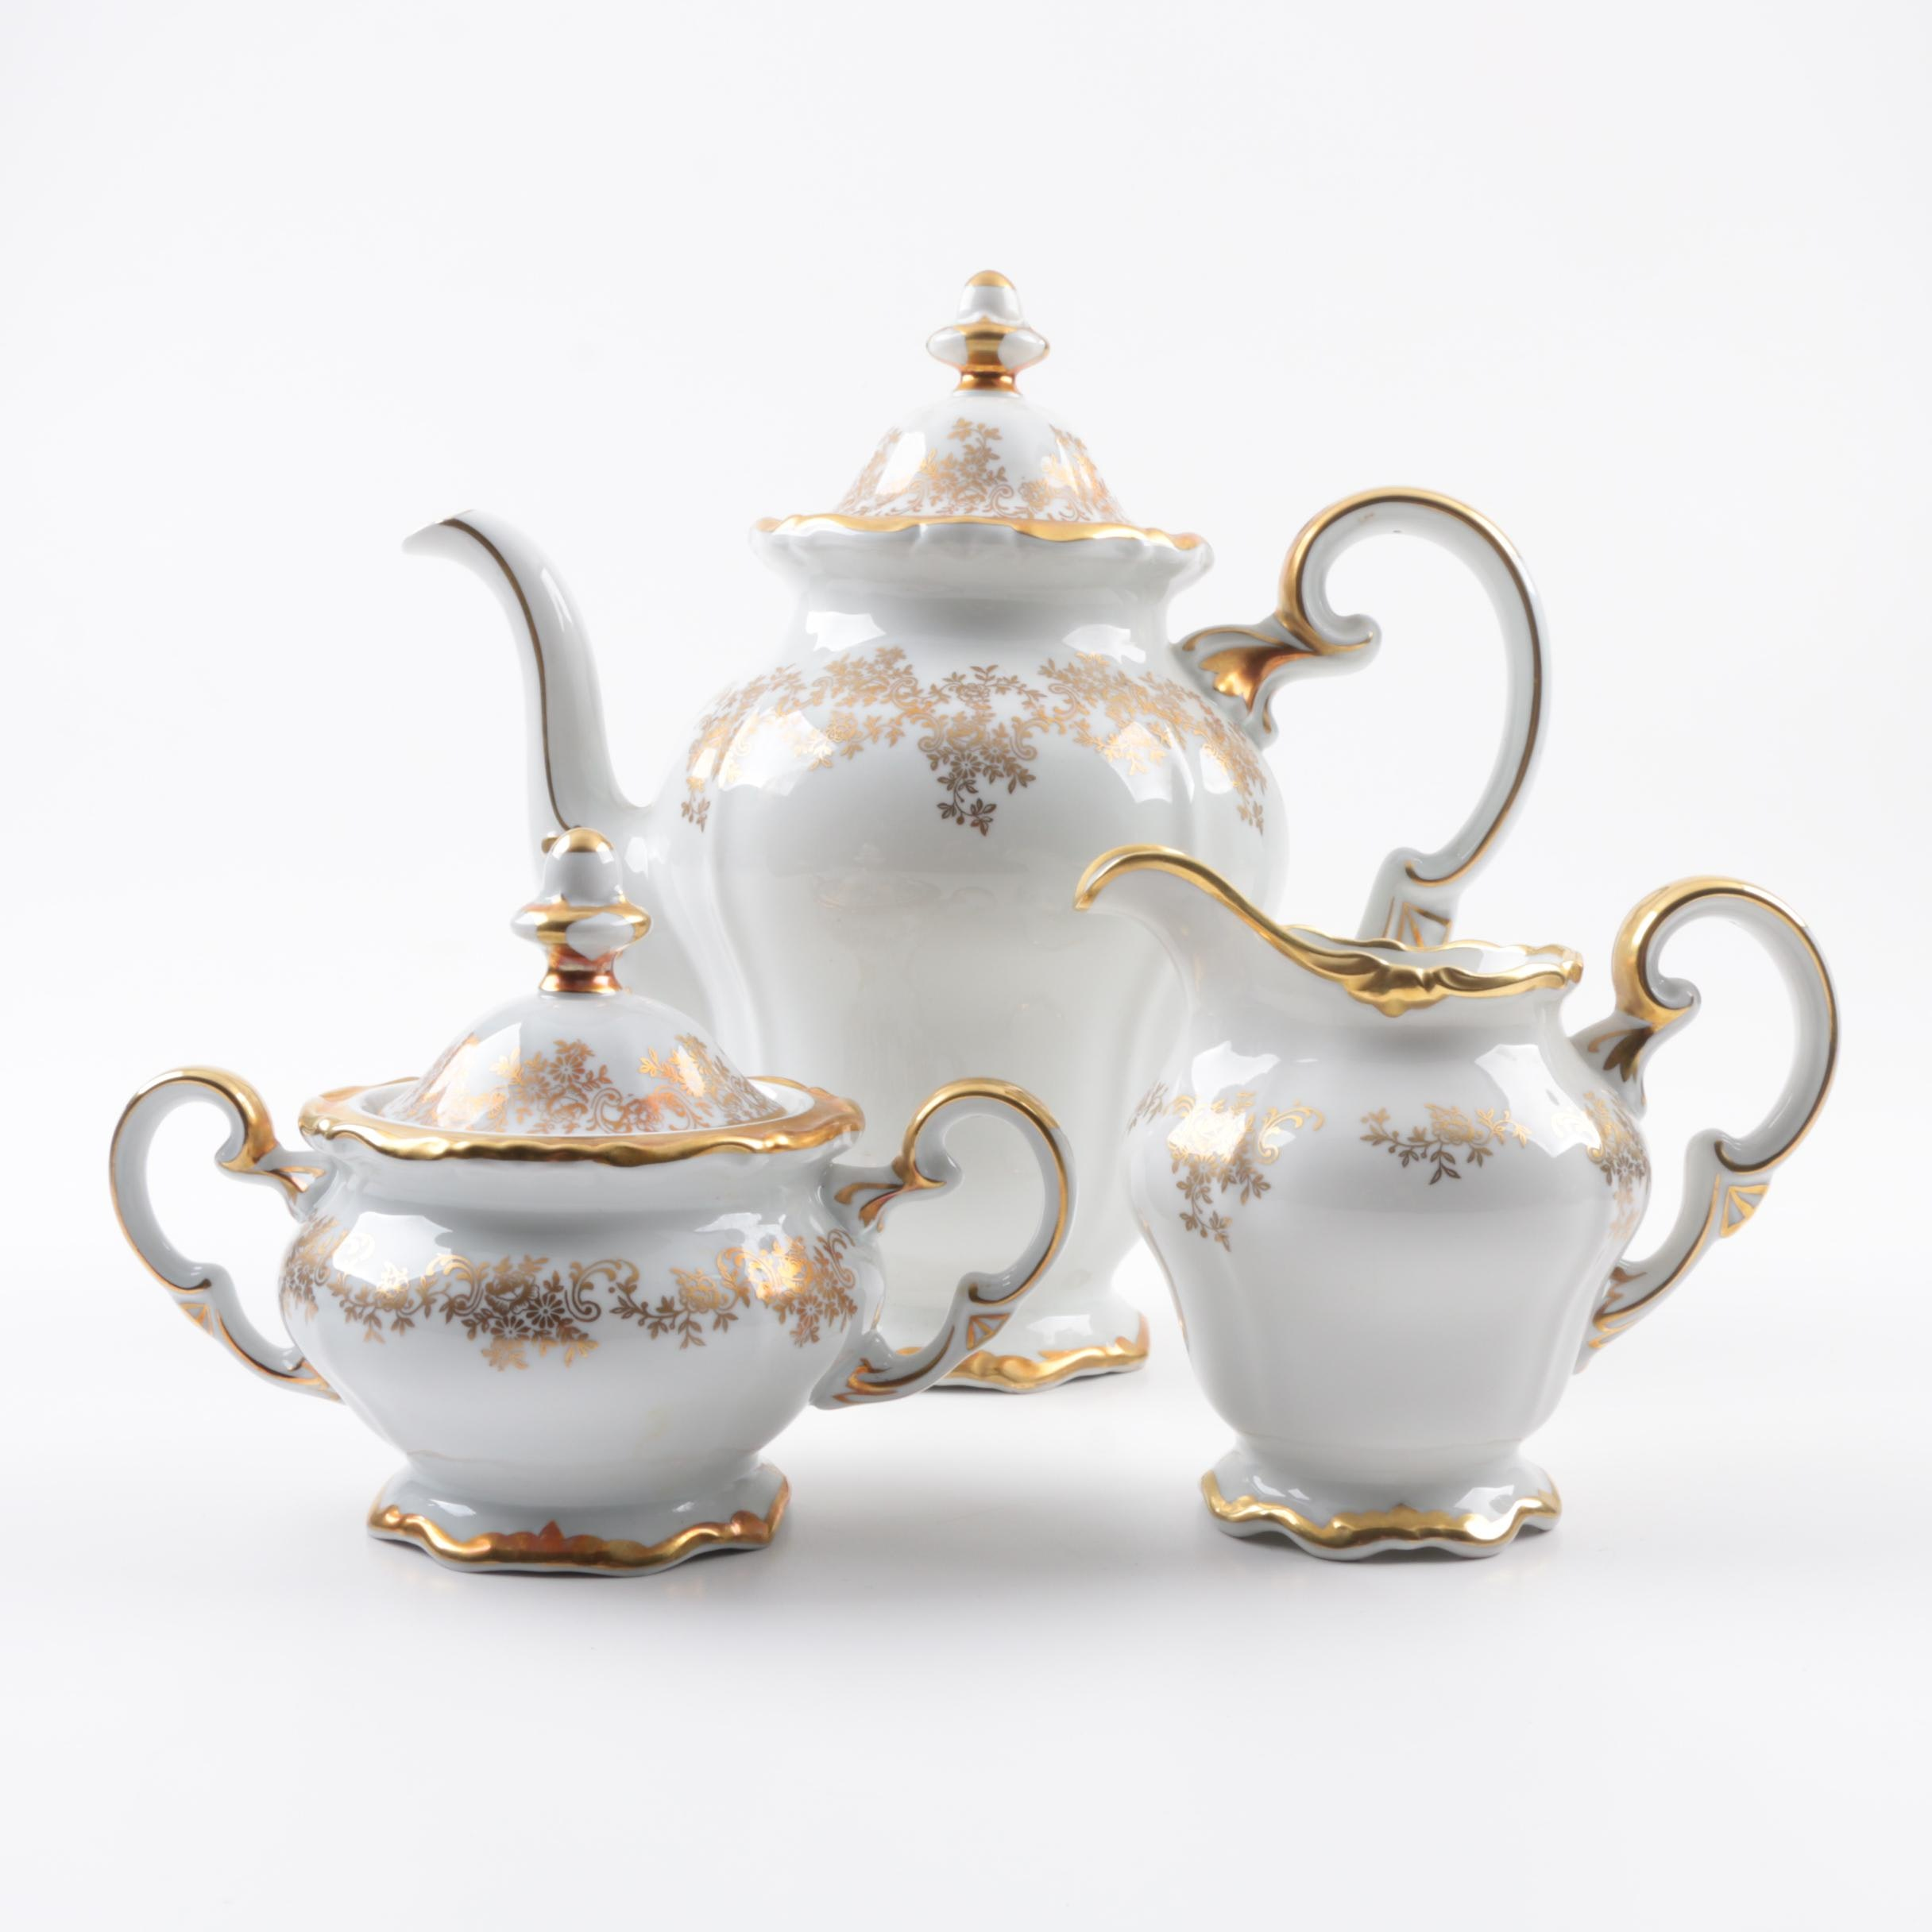 Weimar Katharina 14051 Gold And White Porcelain Coffee Service